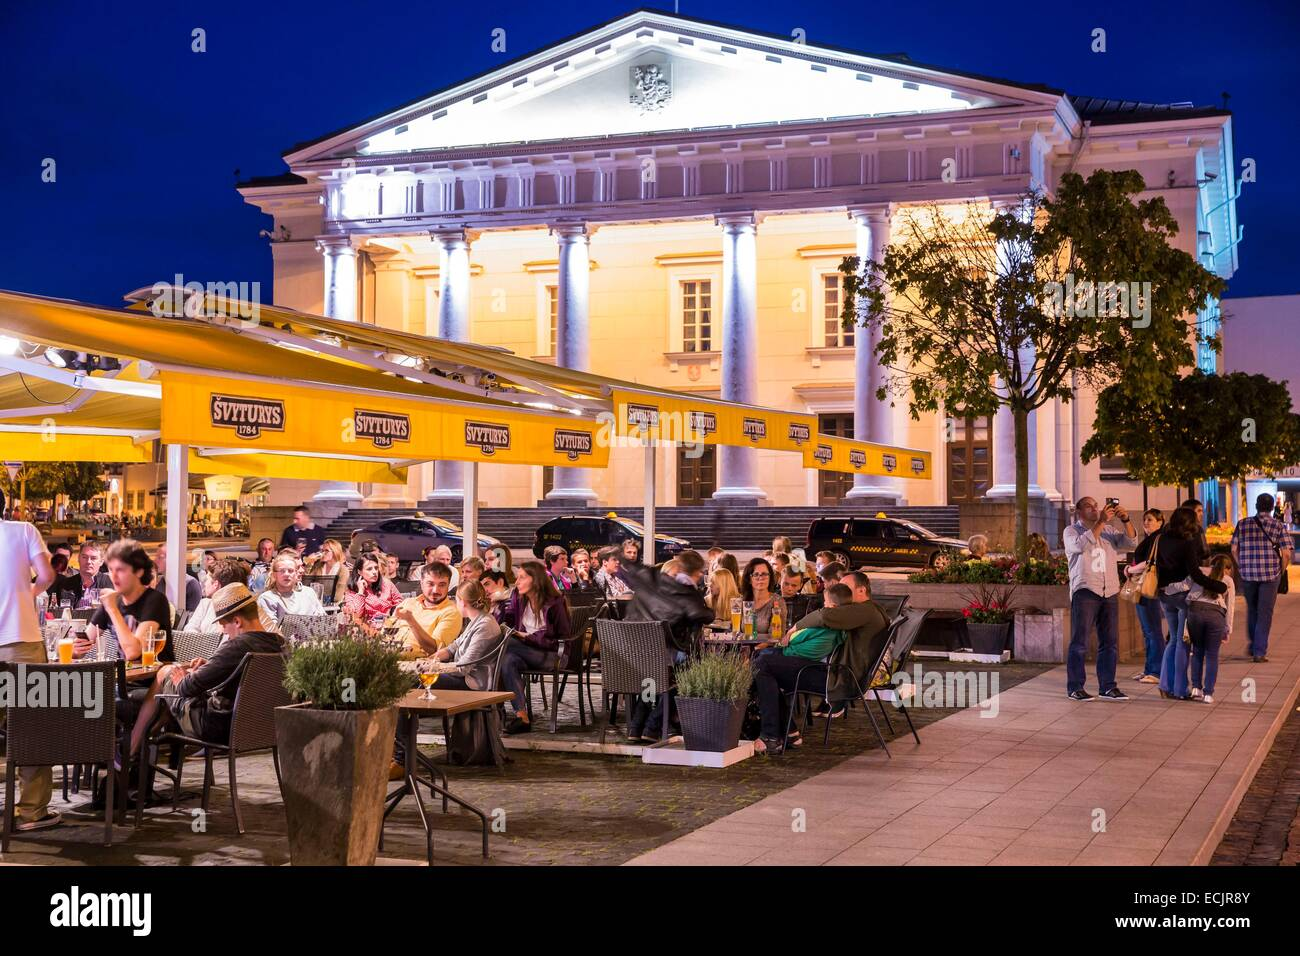 Lithuania (Baltic States), Vilnius, historical center, listed as World Heritage by UNESCO, terrace of restaurant - Stock Image